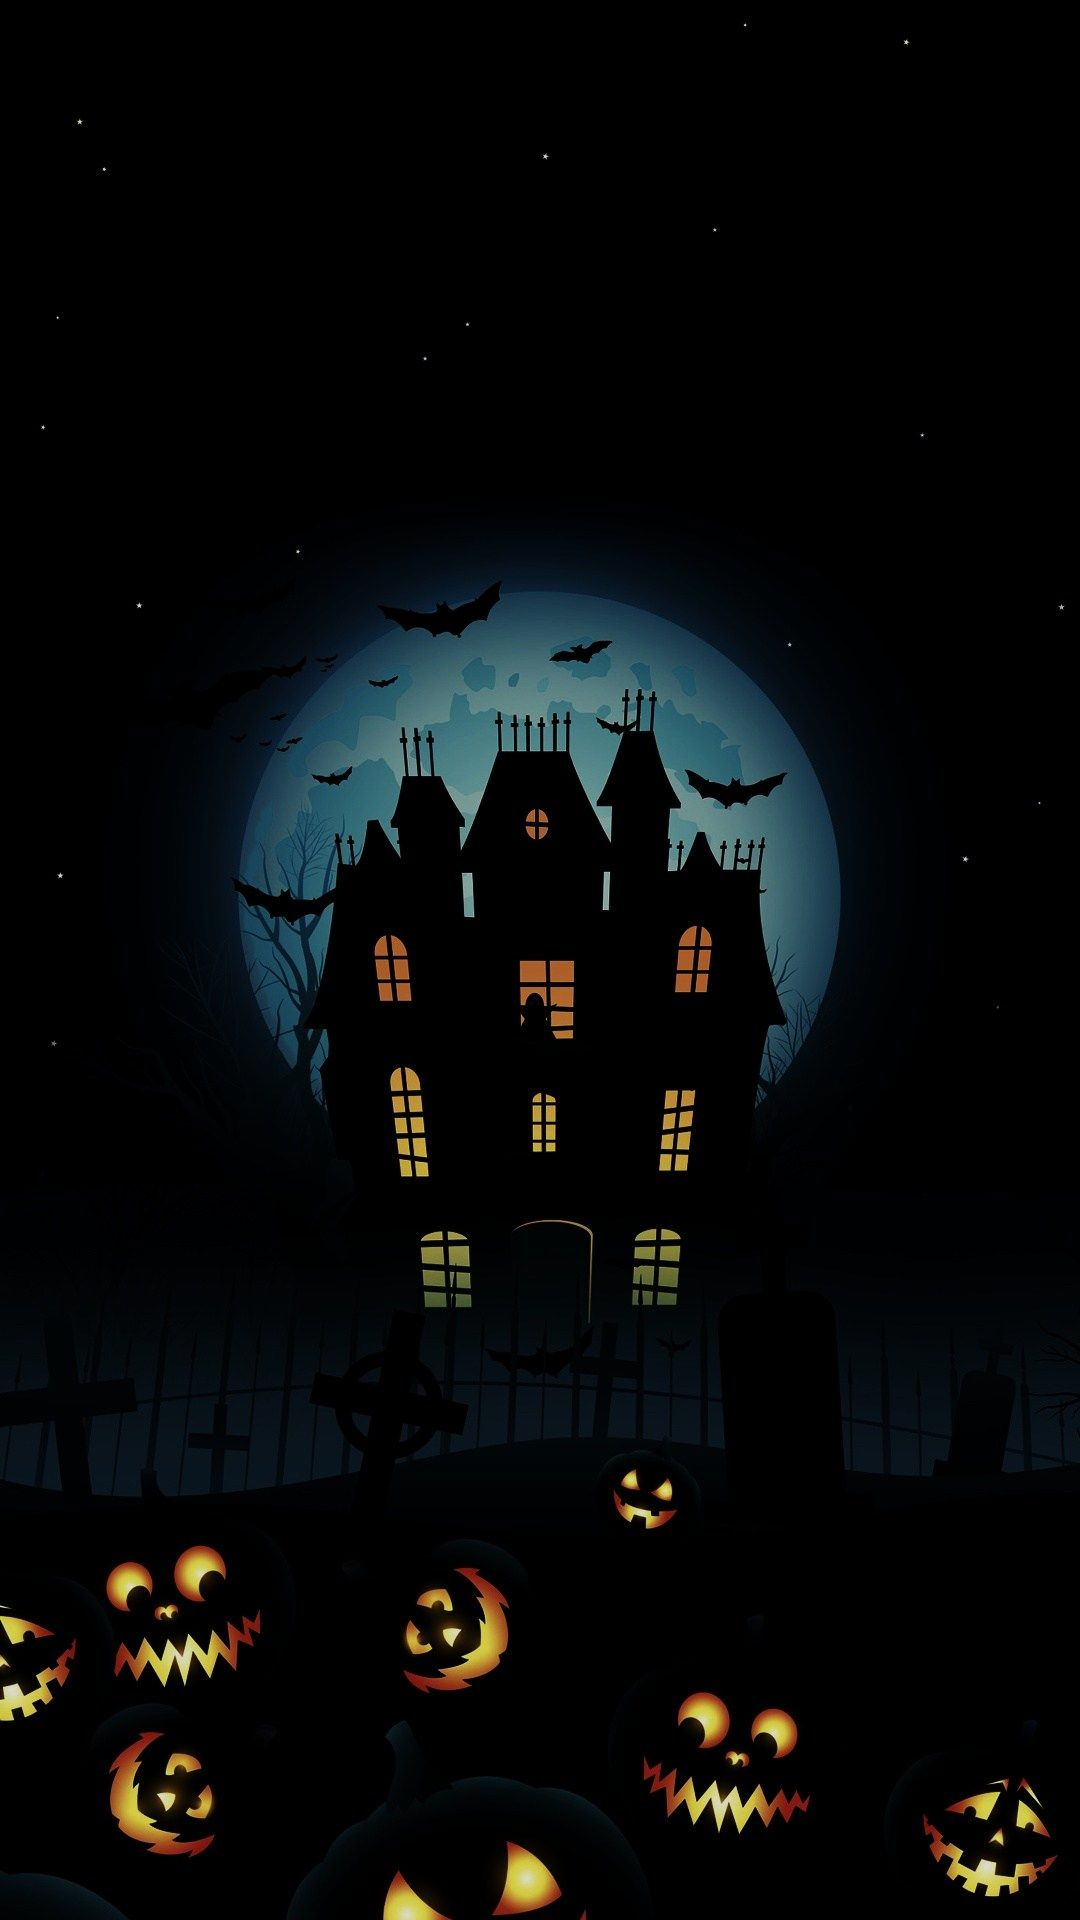 Halloween Wallpaper Graphic 2020 iPhone 11 Pro Wallpaper in 2020 | Halloween wallpaper backgrounds